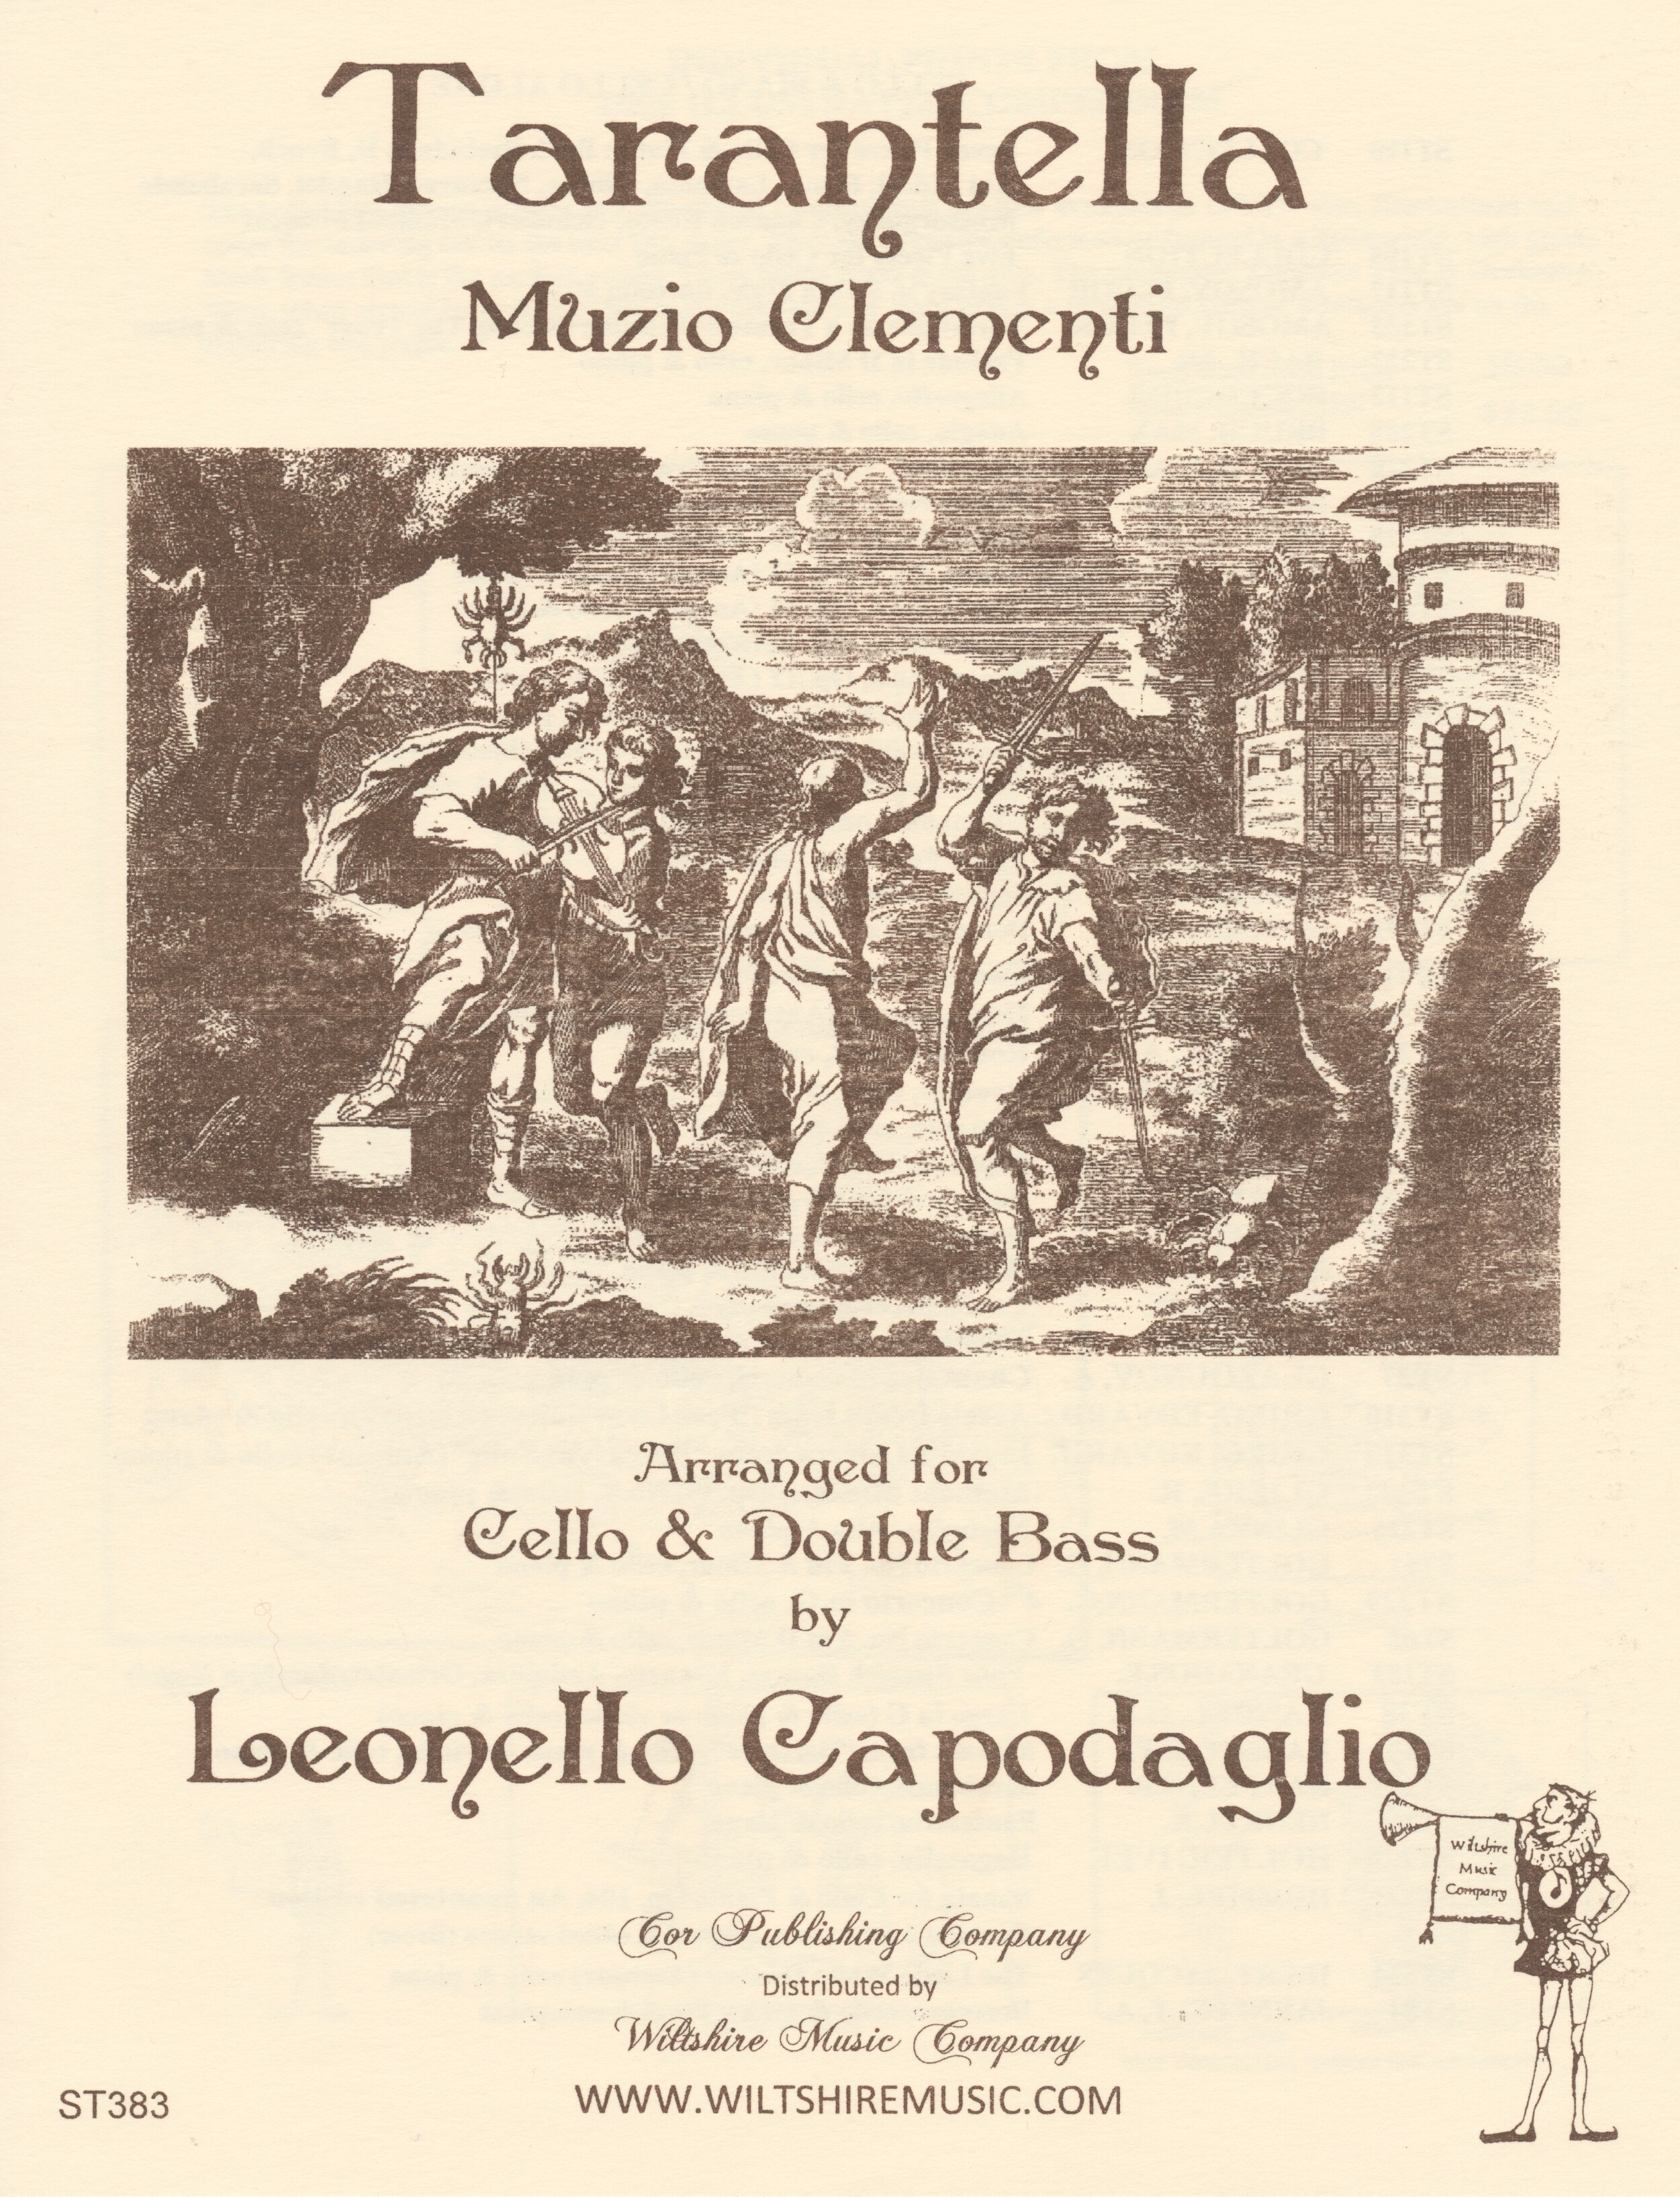 Tarantella, M. Clementi, arr. L. Capodaglio for cello & bouble b